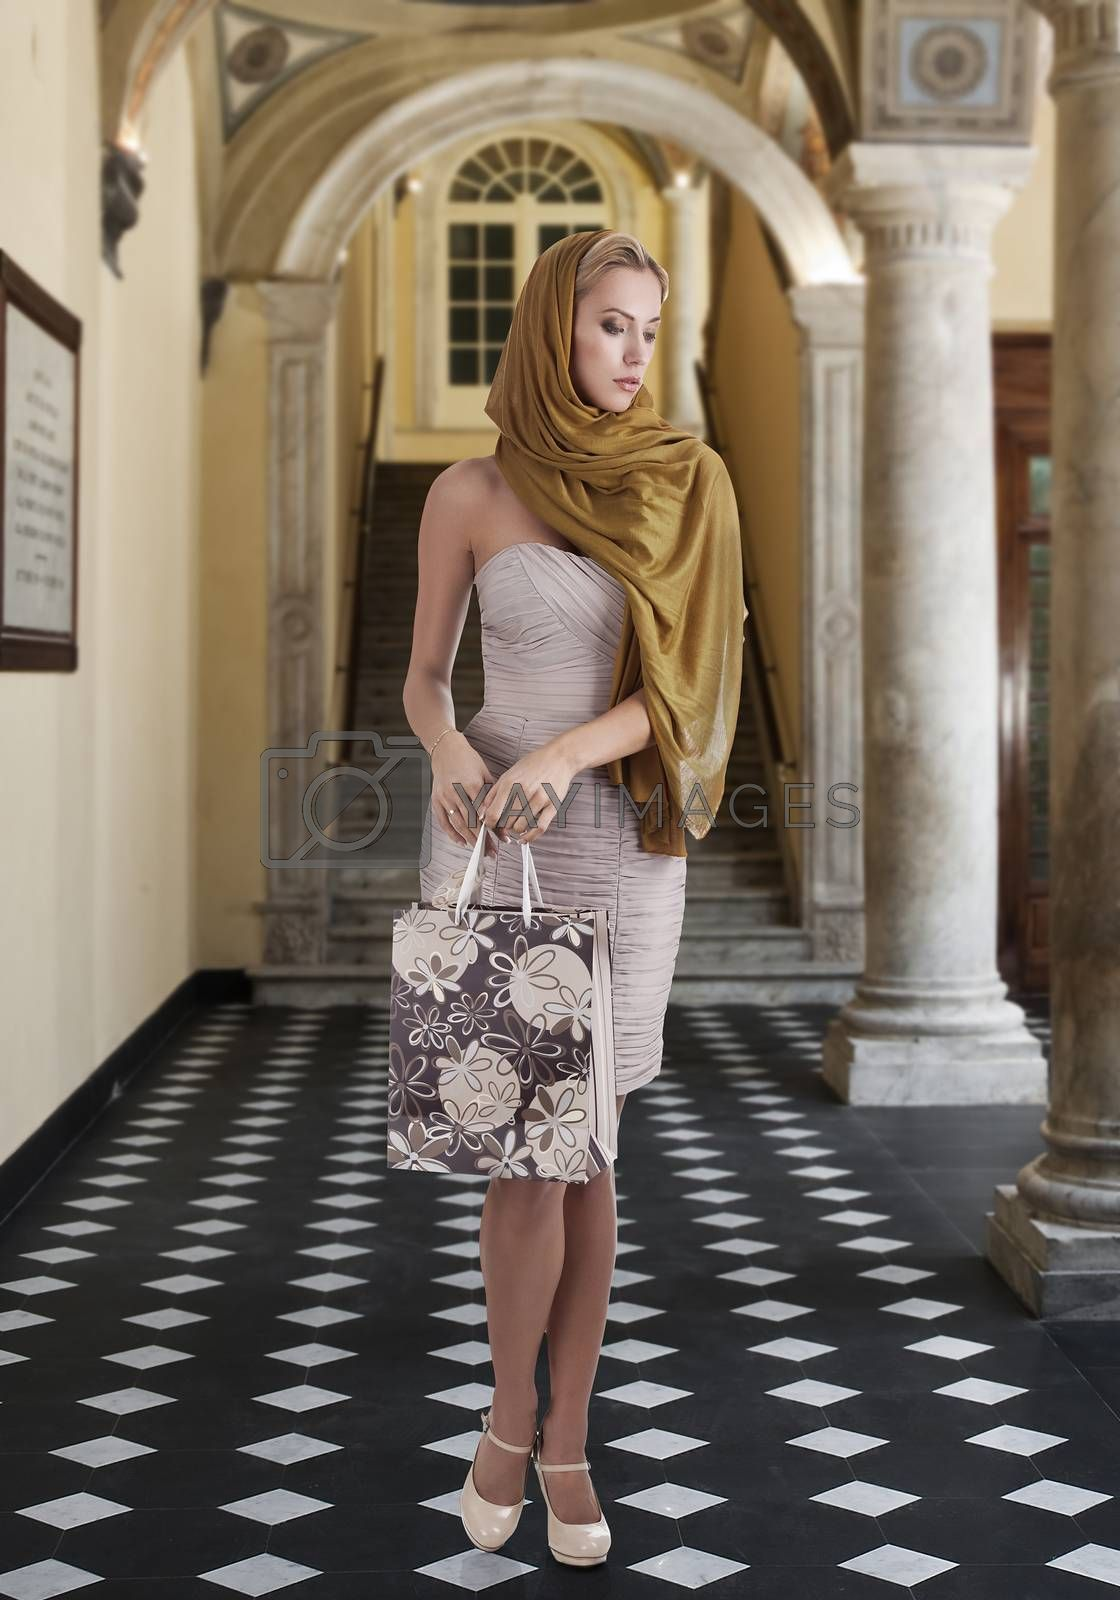 Royalty free image of elegant fashion girl with shopping bag by fotoCD